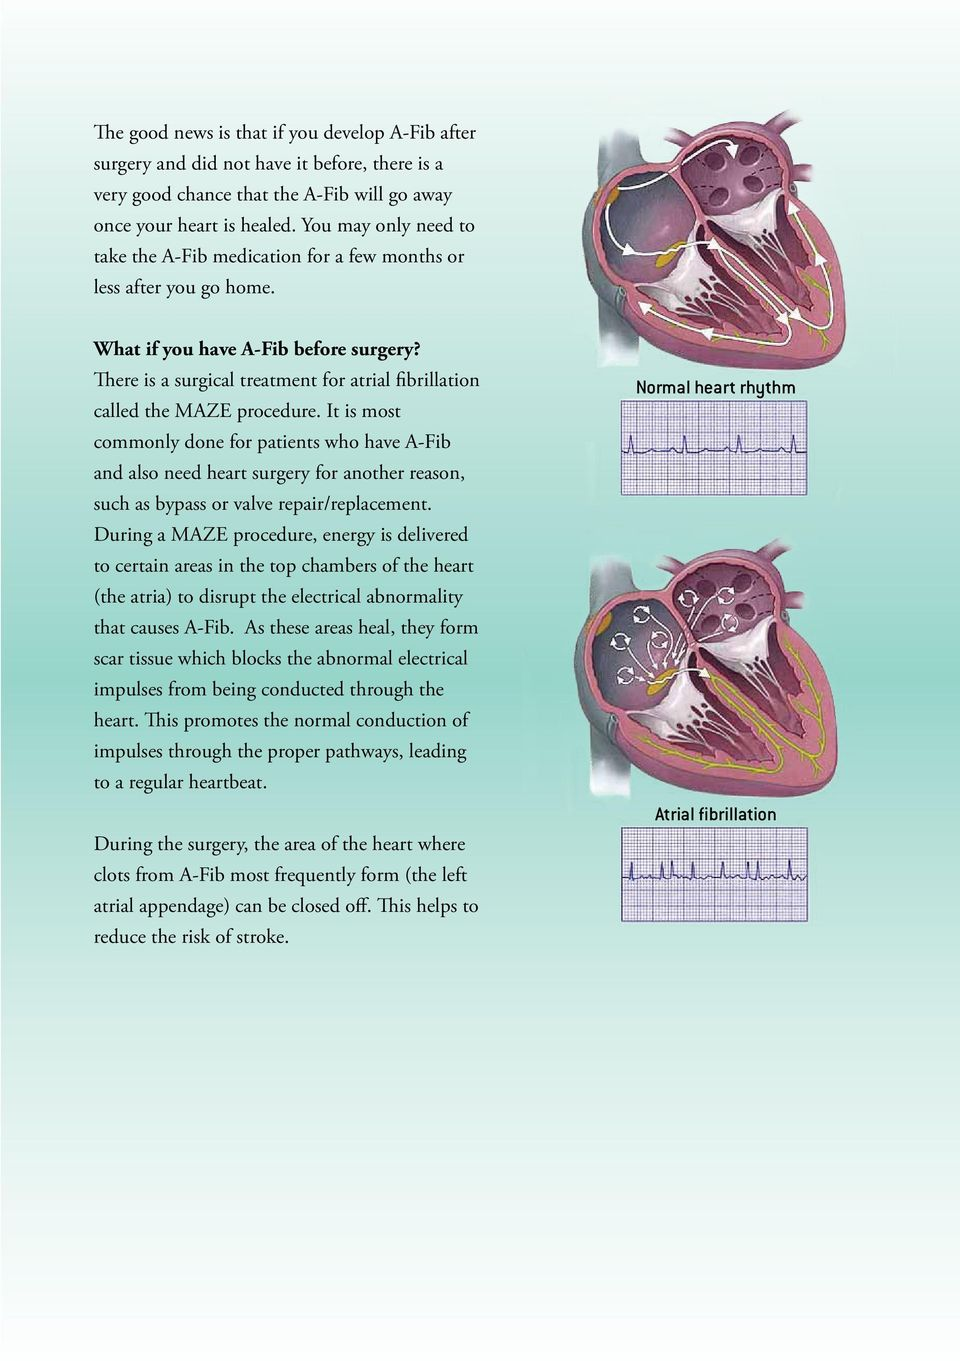 There is a surgical treatment for atrial fibrillation called the MAZE procedure.